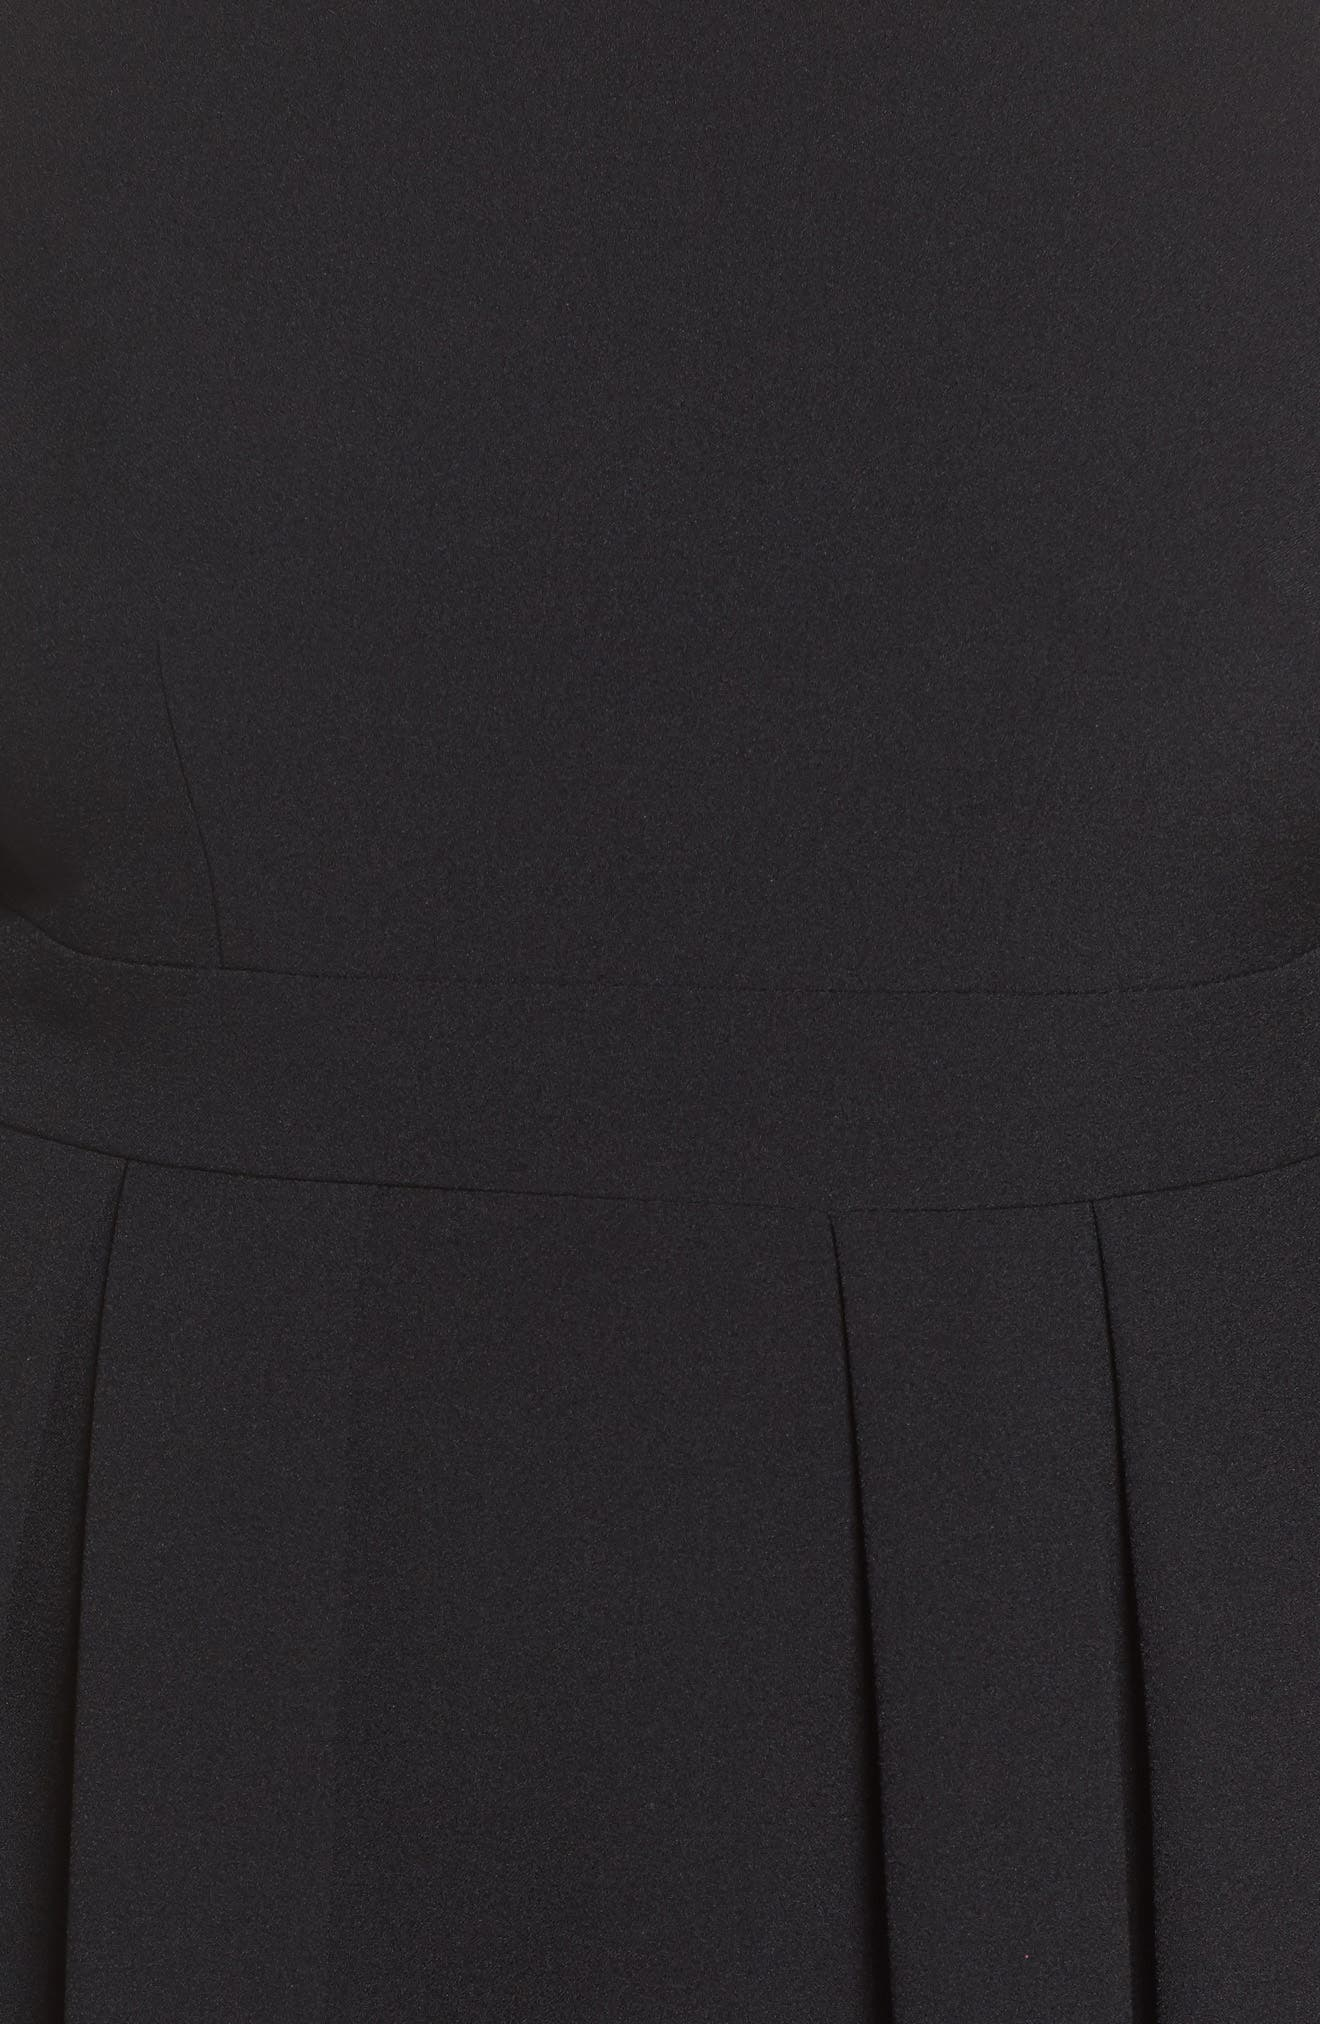 Bell Sleeve Fit & Flare Dress,                             Alternate thumbnail 6, color,                             BLACK